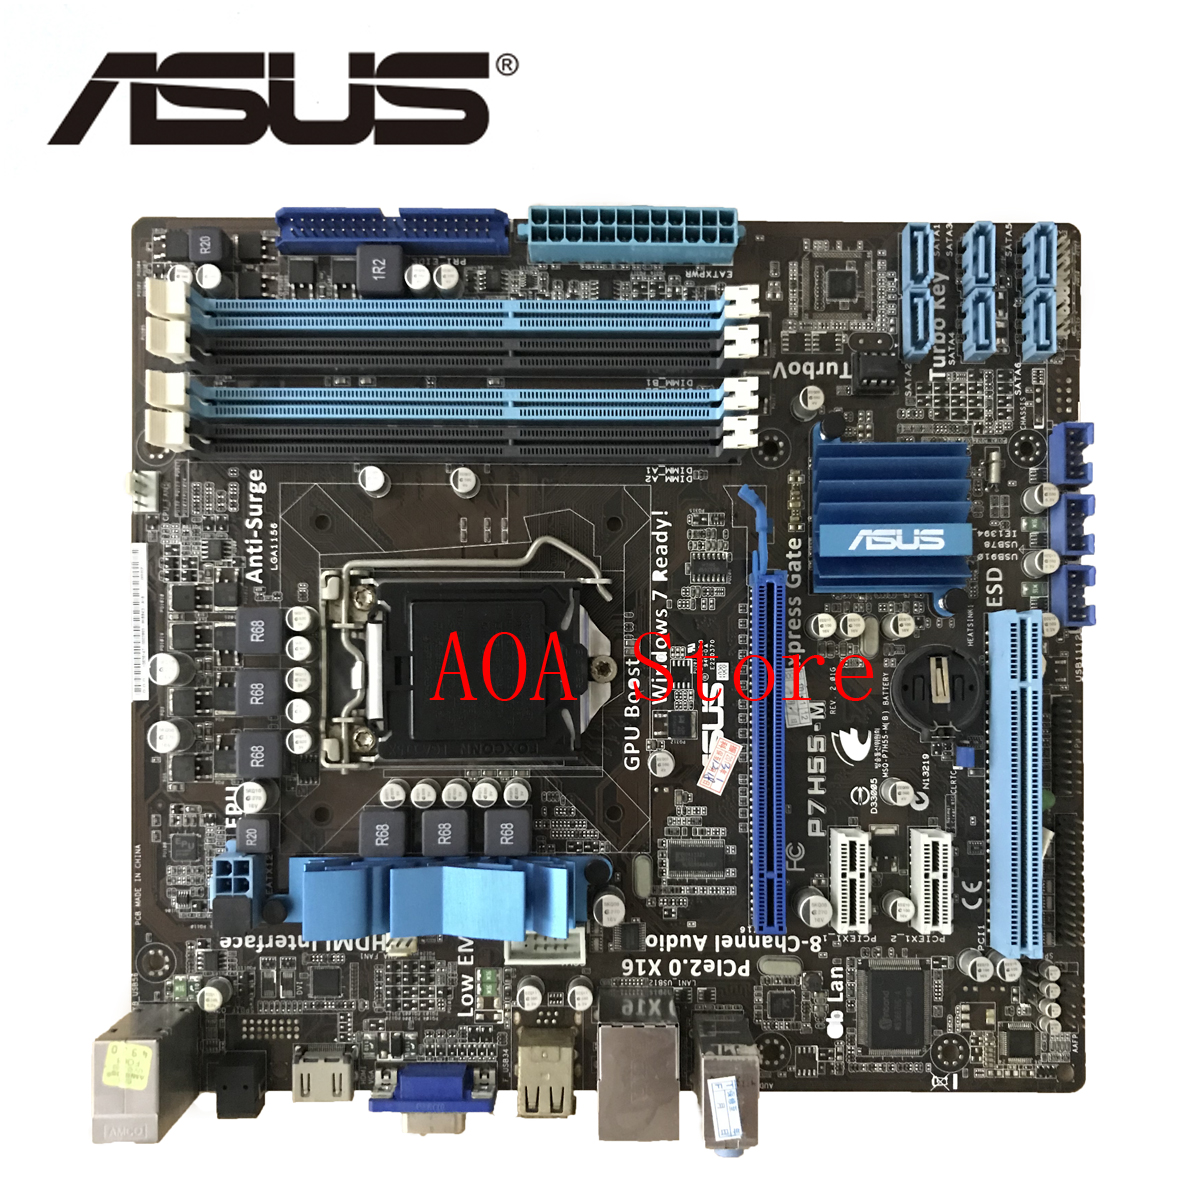 Socket LGA 1156 para Intel H55 ASUS P7H55-M Original placa madre hembra uATX HDMI VGA 4 DDR3 16 GB placa base de escritorio p7H55M